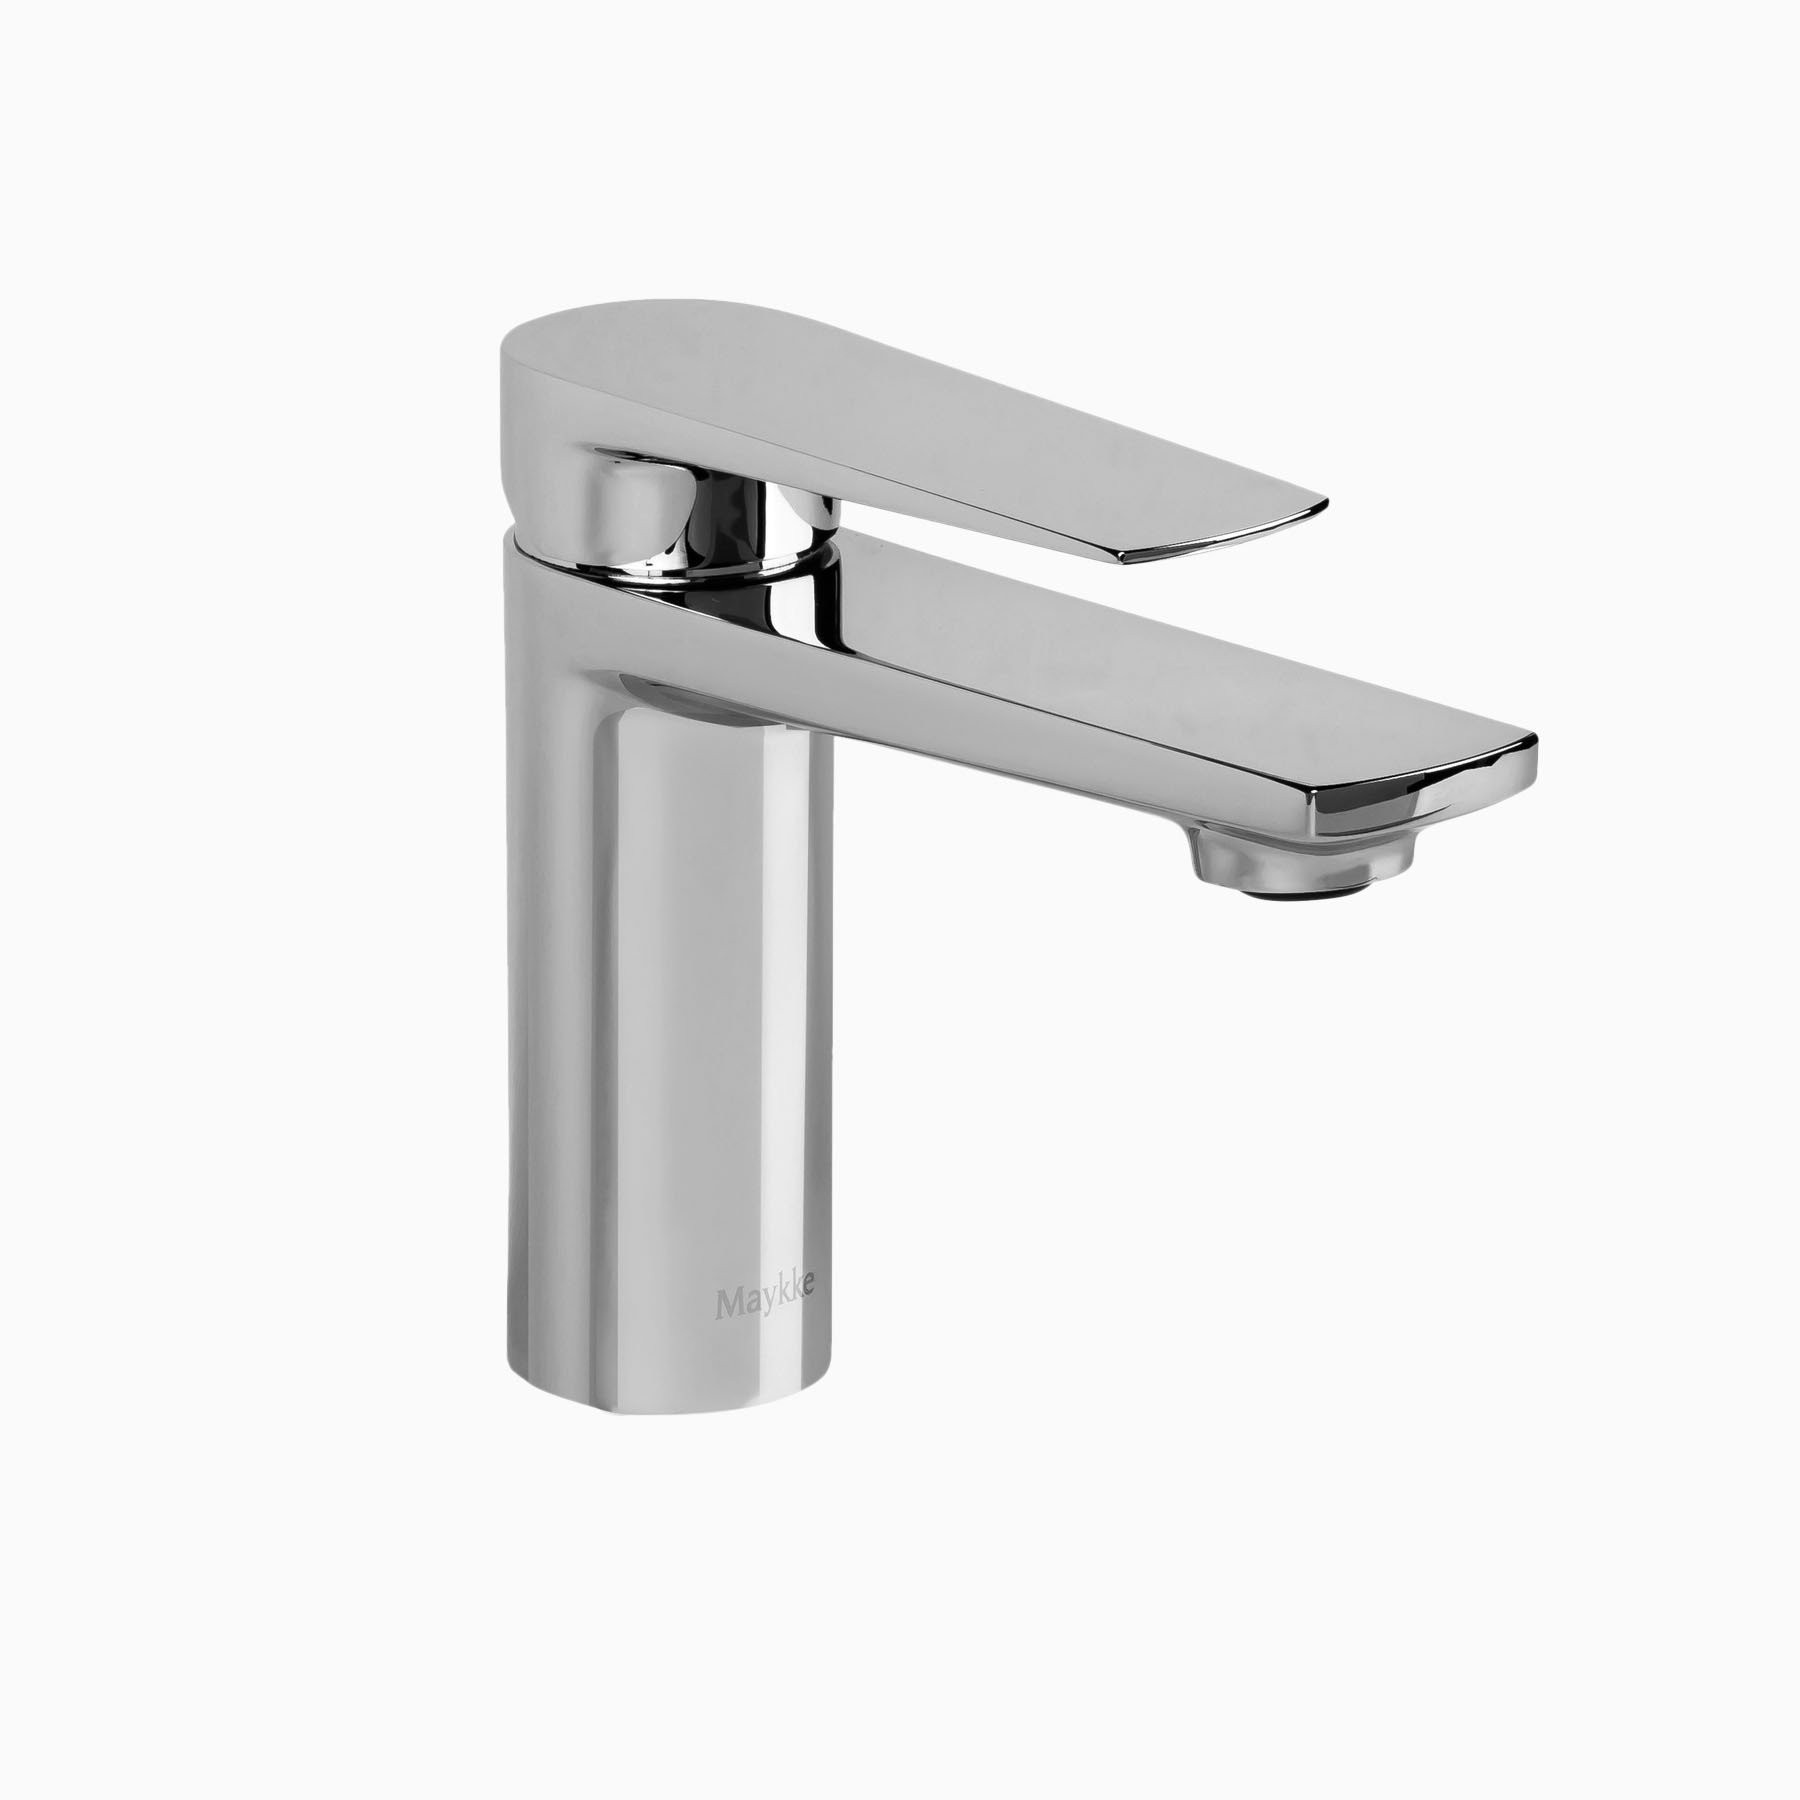 Bathroom Sink Faucets - Vanity Faucets - Vessel Sink Faucets